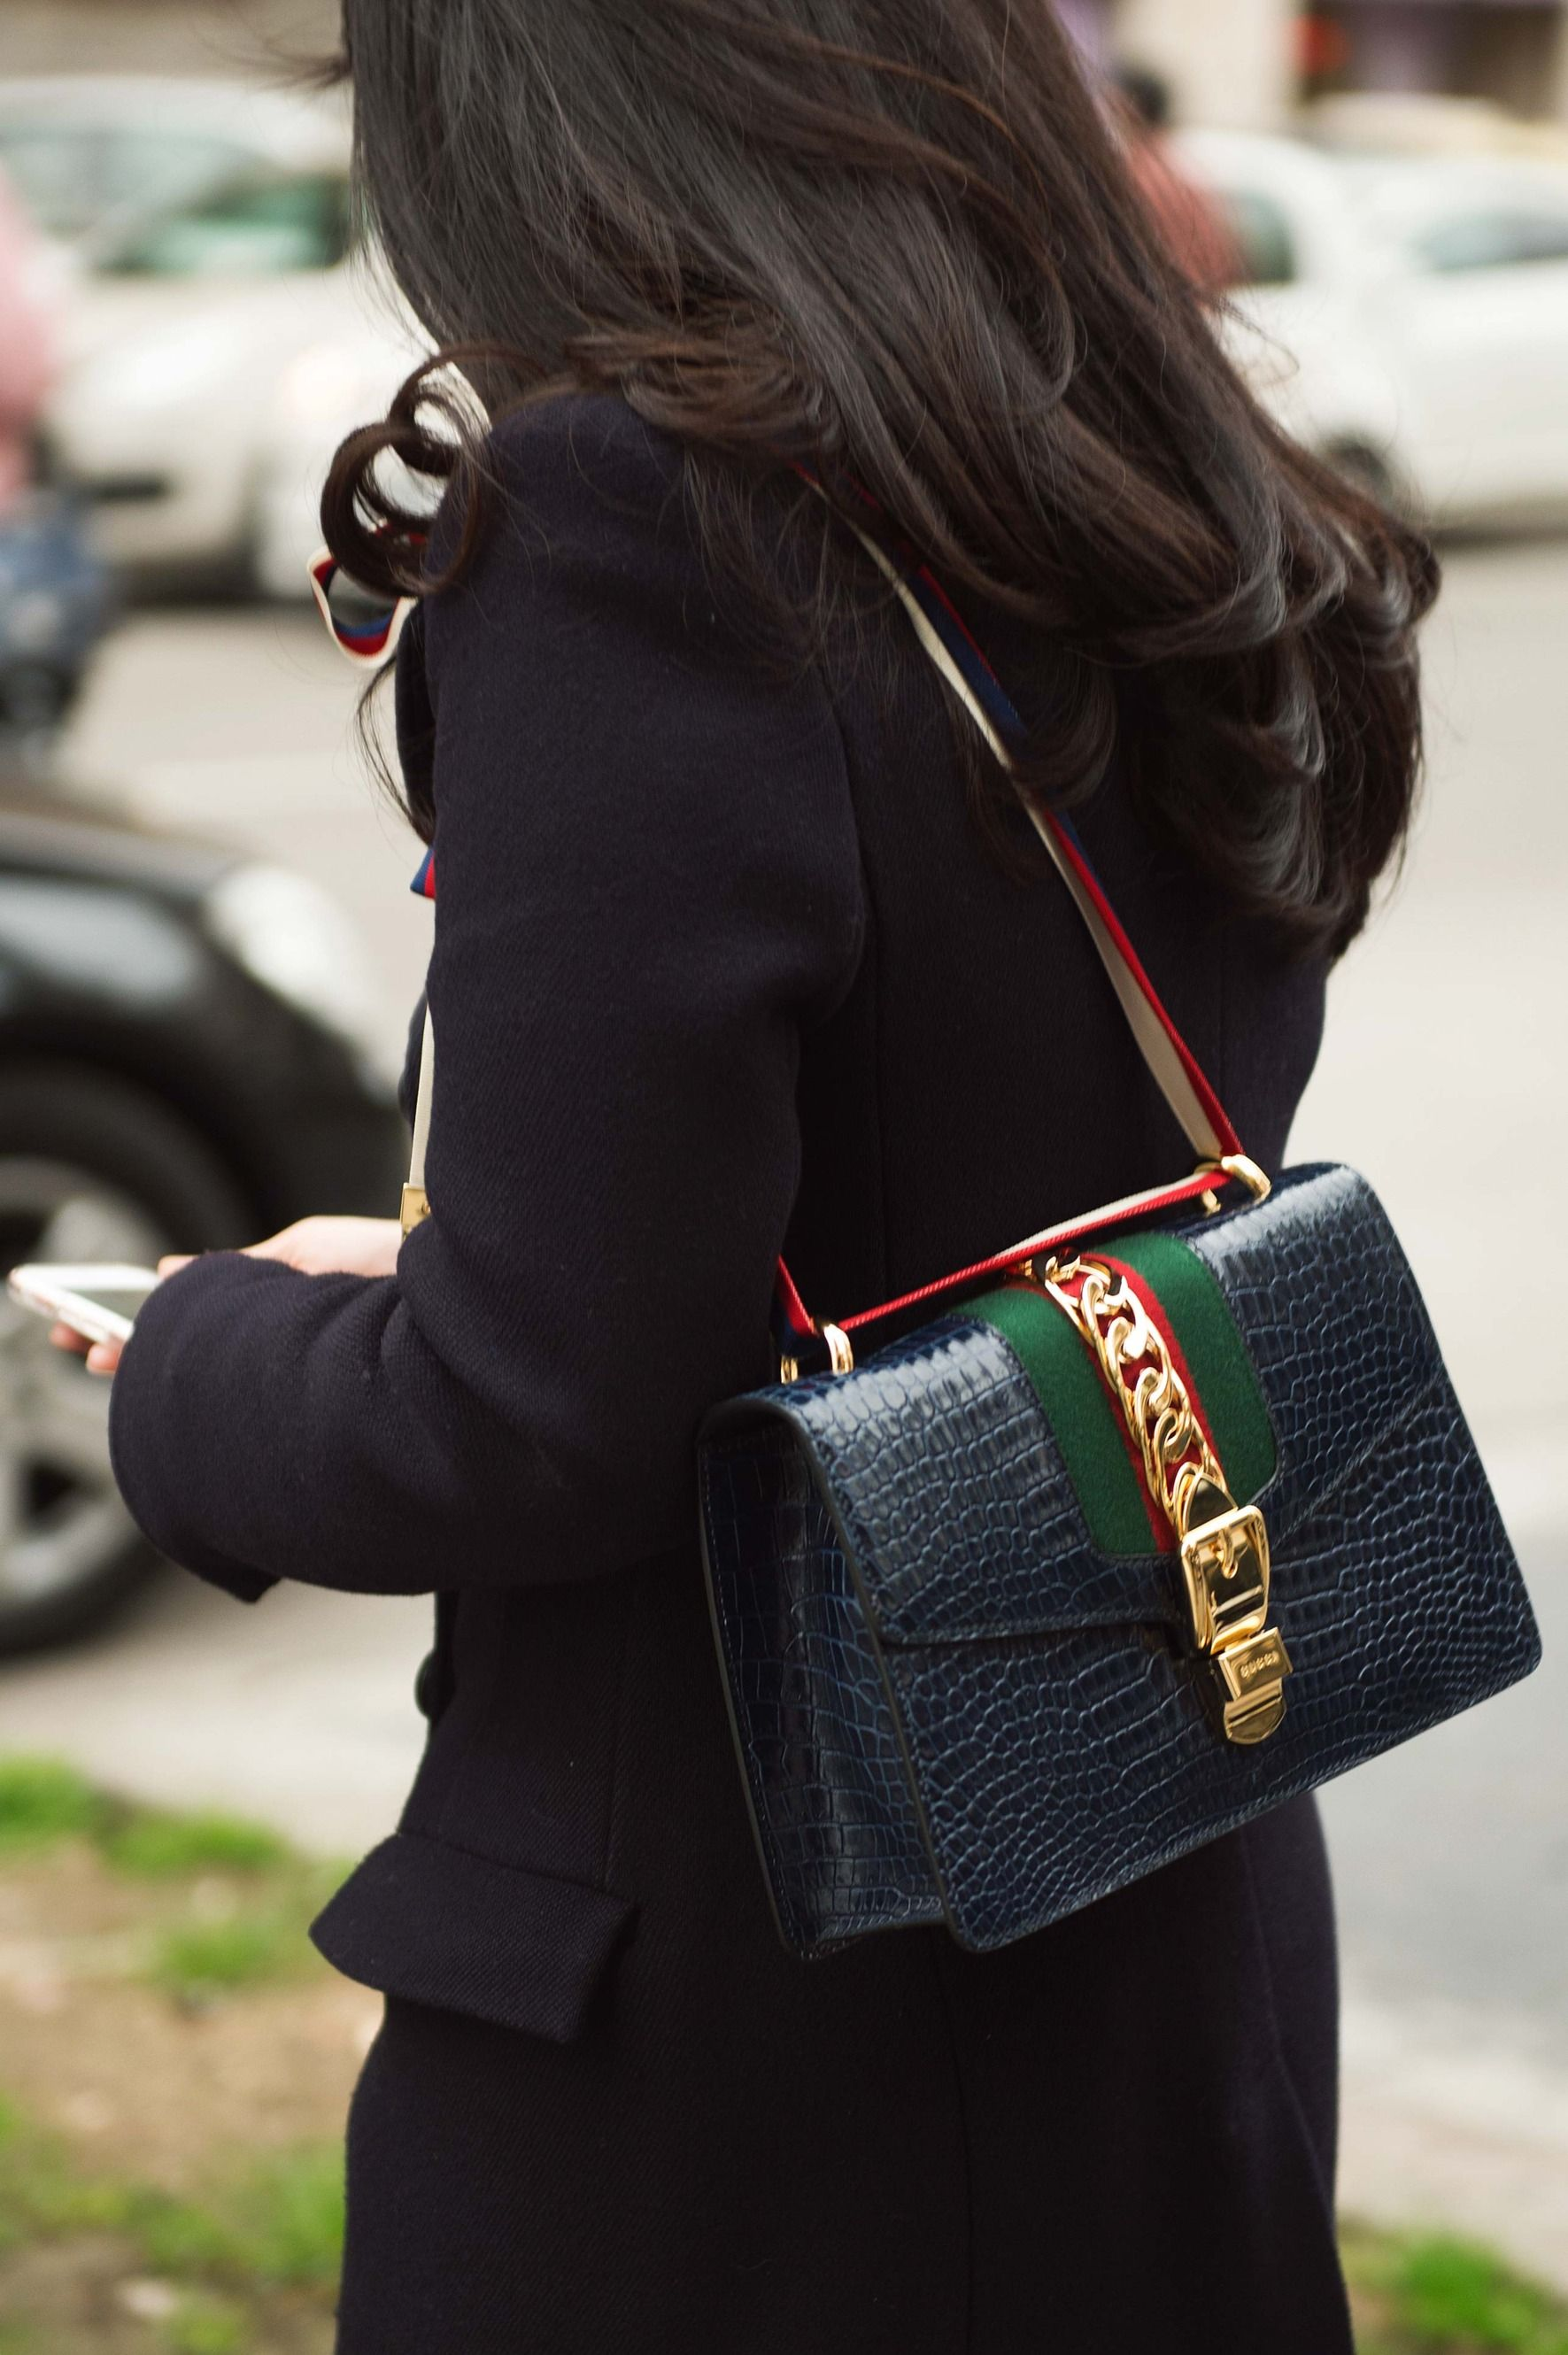 See All the Best Street Style from Milan Fashion Week   Bags   Gucci ... eedc65cc9d5